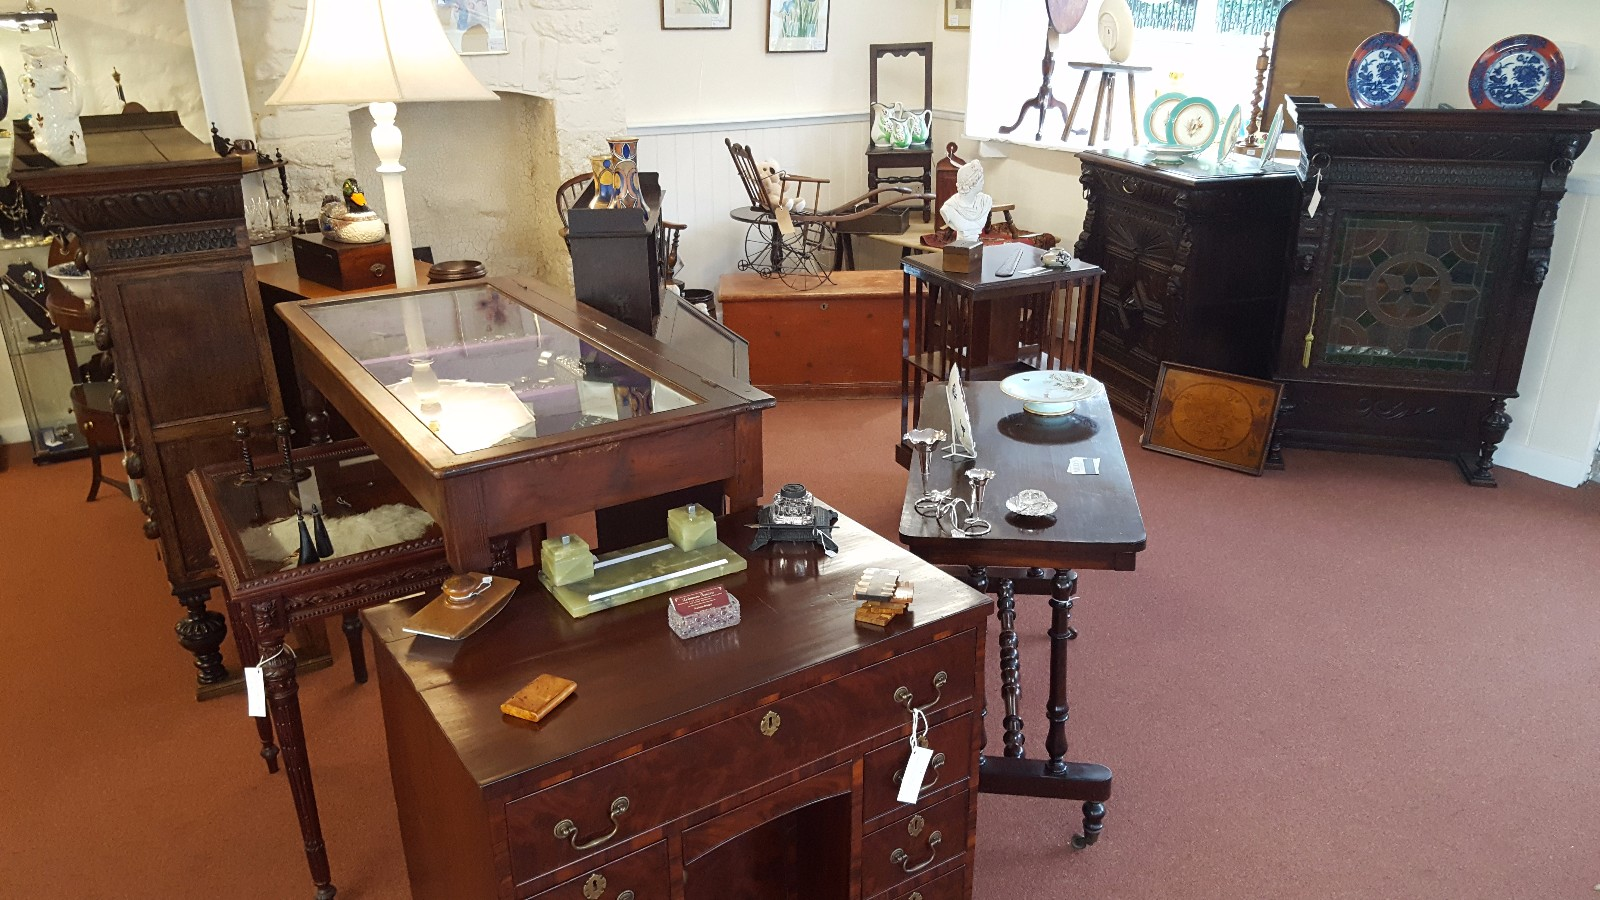 Milly's Antiques image (1 of 4)